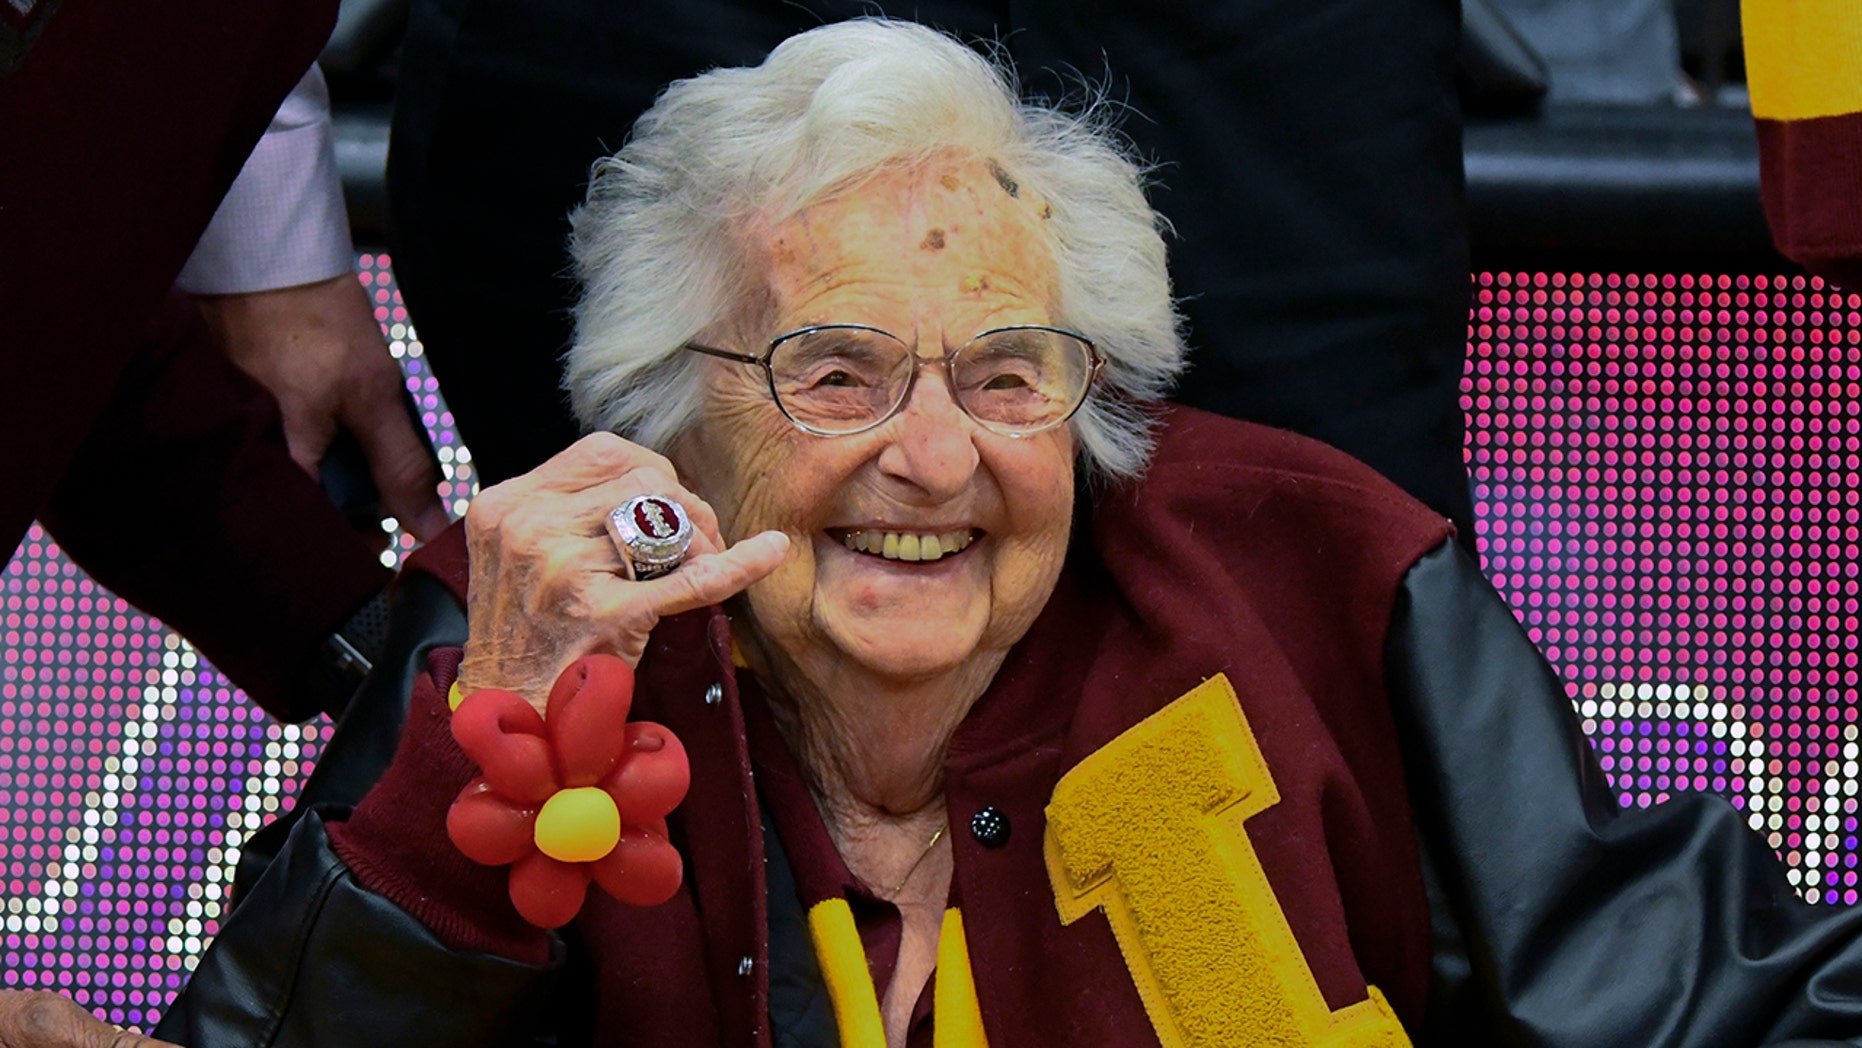 Sister Jean of Loyola University of Chicago unveils the NCAA's Final Four Ring that she received before an NCAA college basketball game between Loyola of Chicago and Nevada in Chicago, the Tuesday, November 27, 2018.